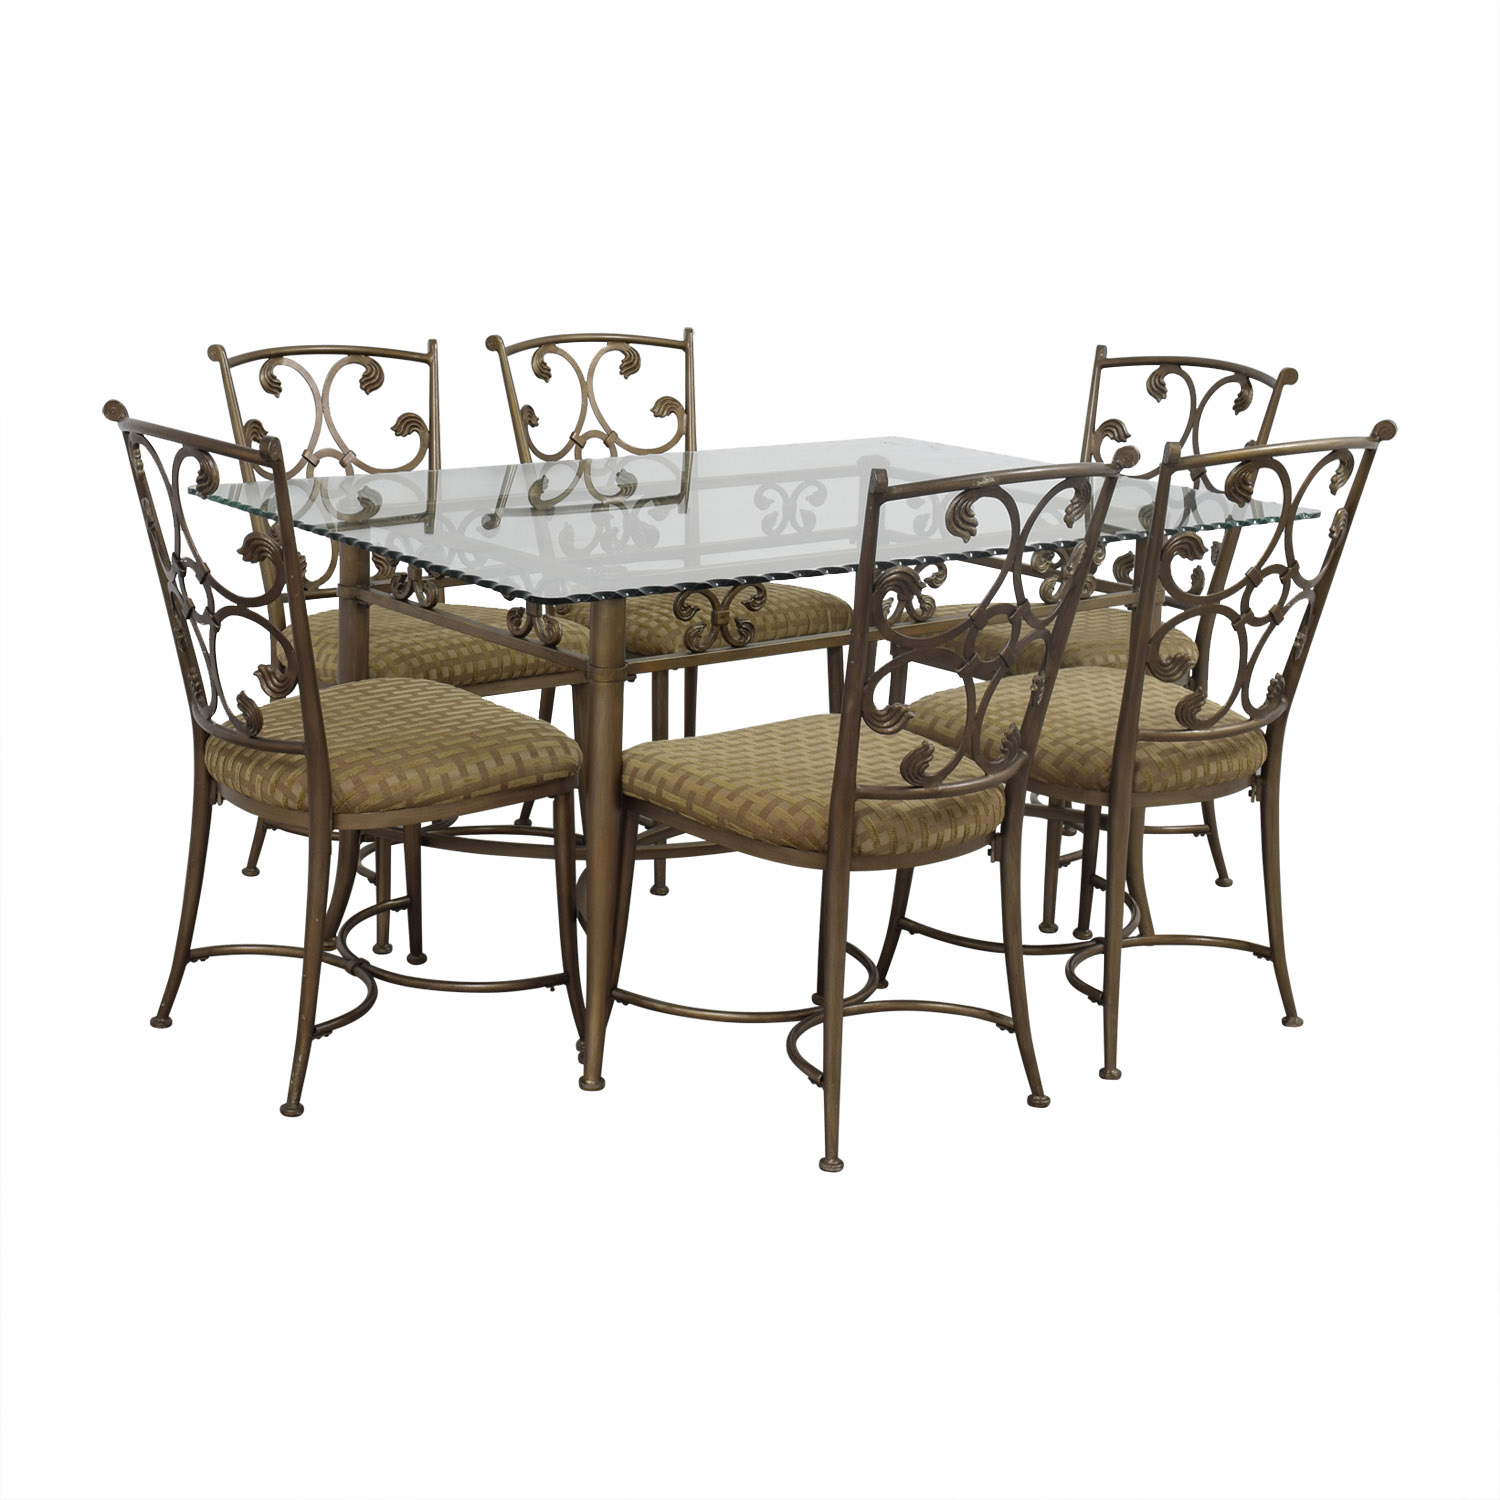 iron chair price swing over canyon 90 off glass and gold wrought dining set tables